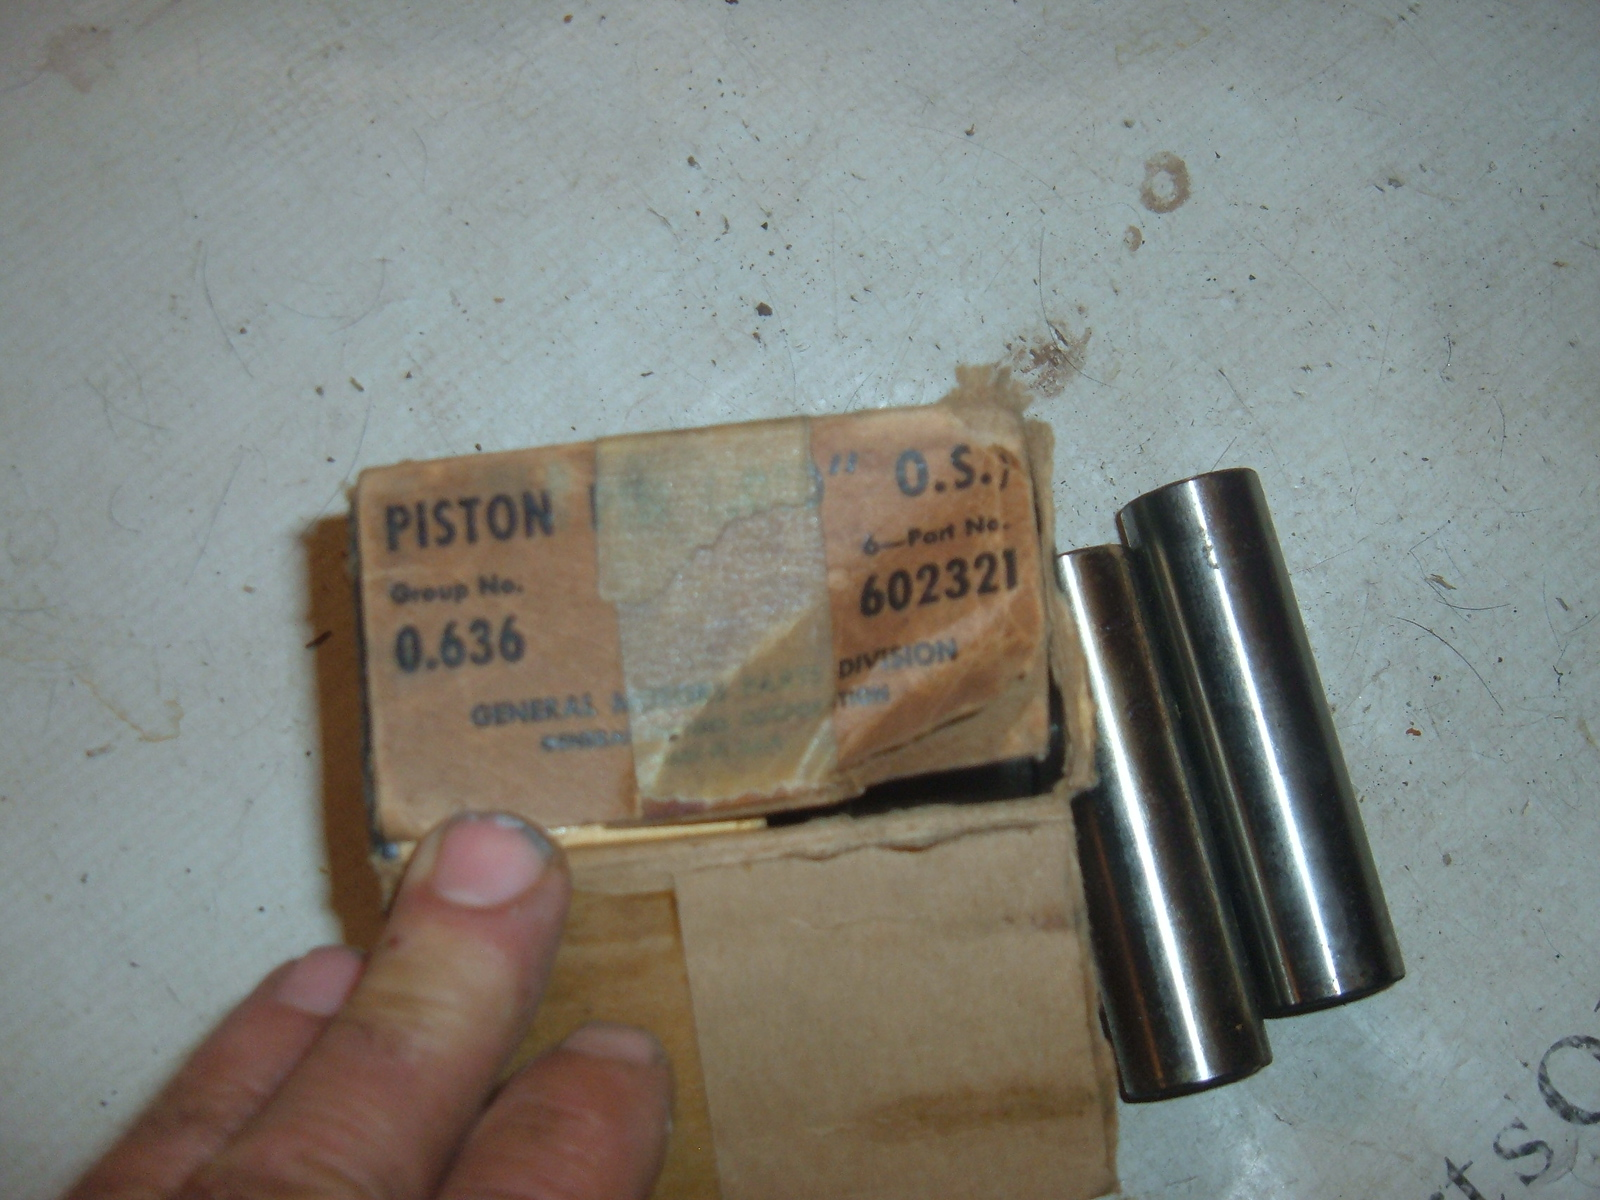 1937 38 39 40 41 42 46 47 48 49 50 51 52 53 chevrolet piston pins nos gm # 602321 (z 602321)